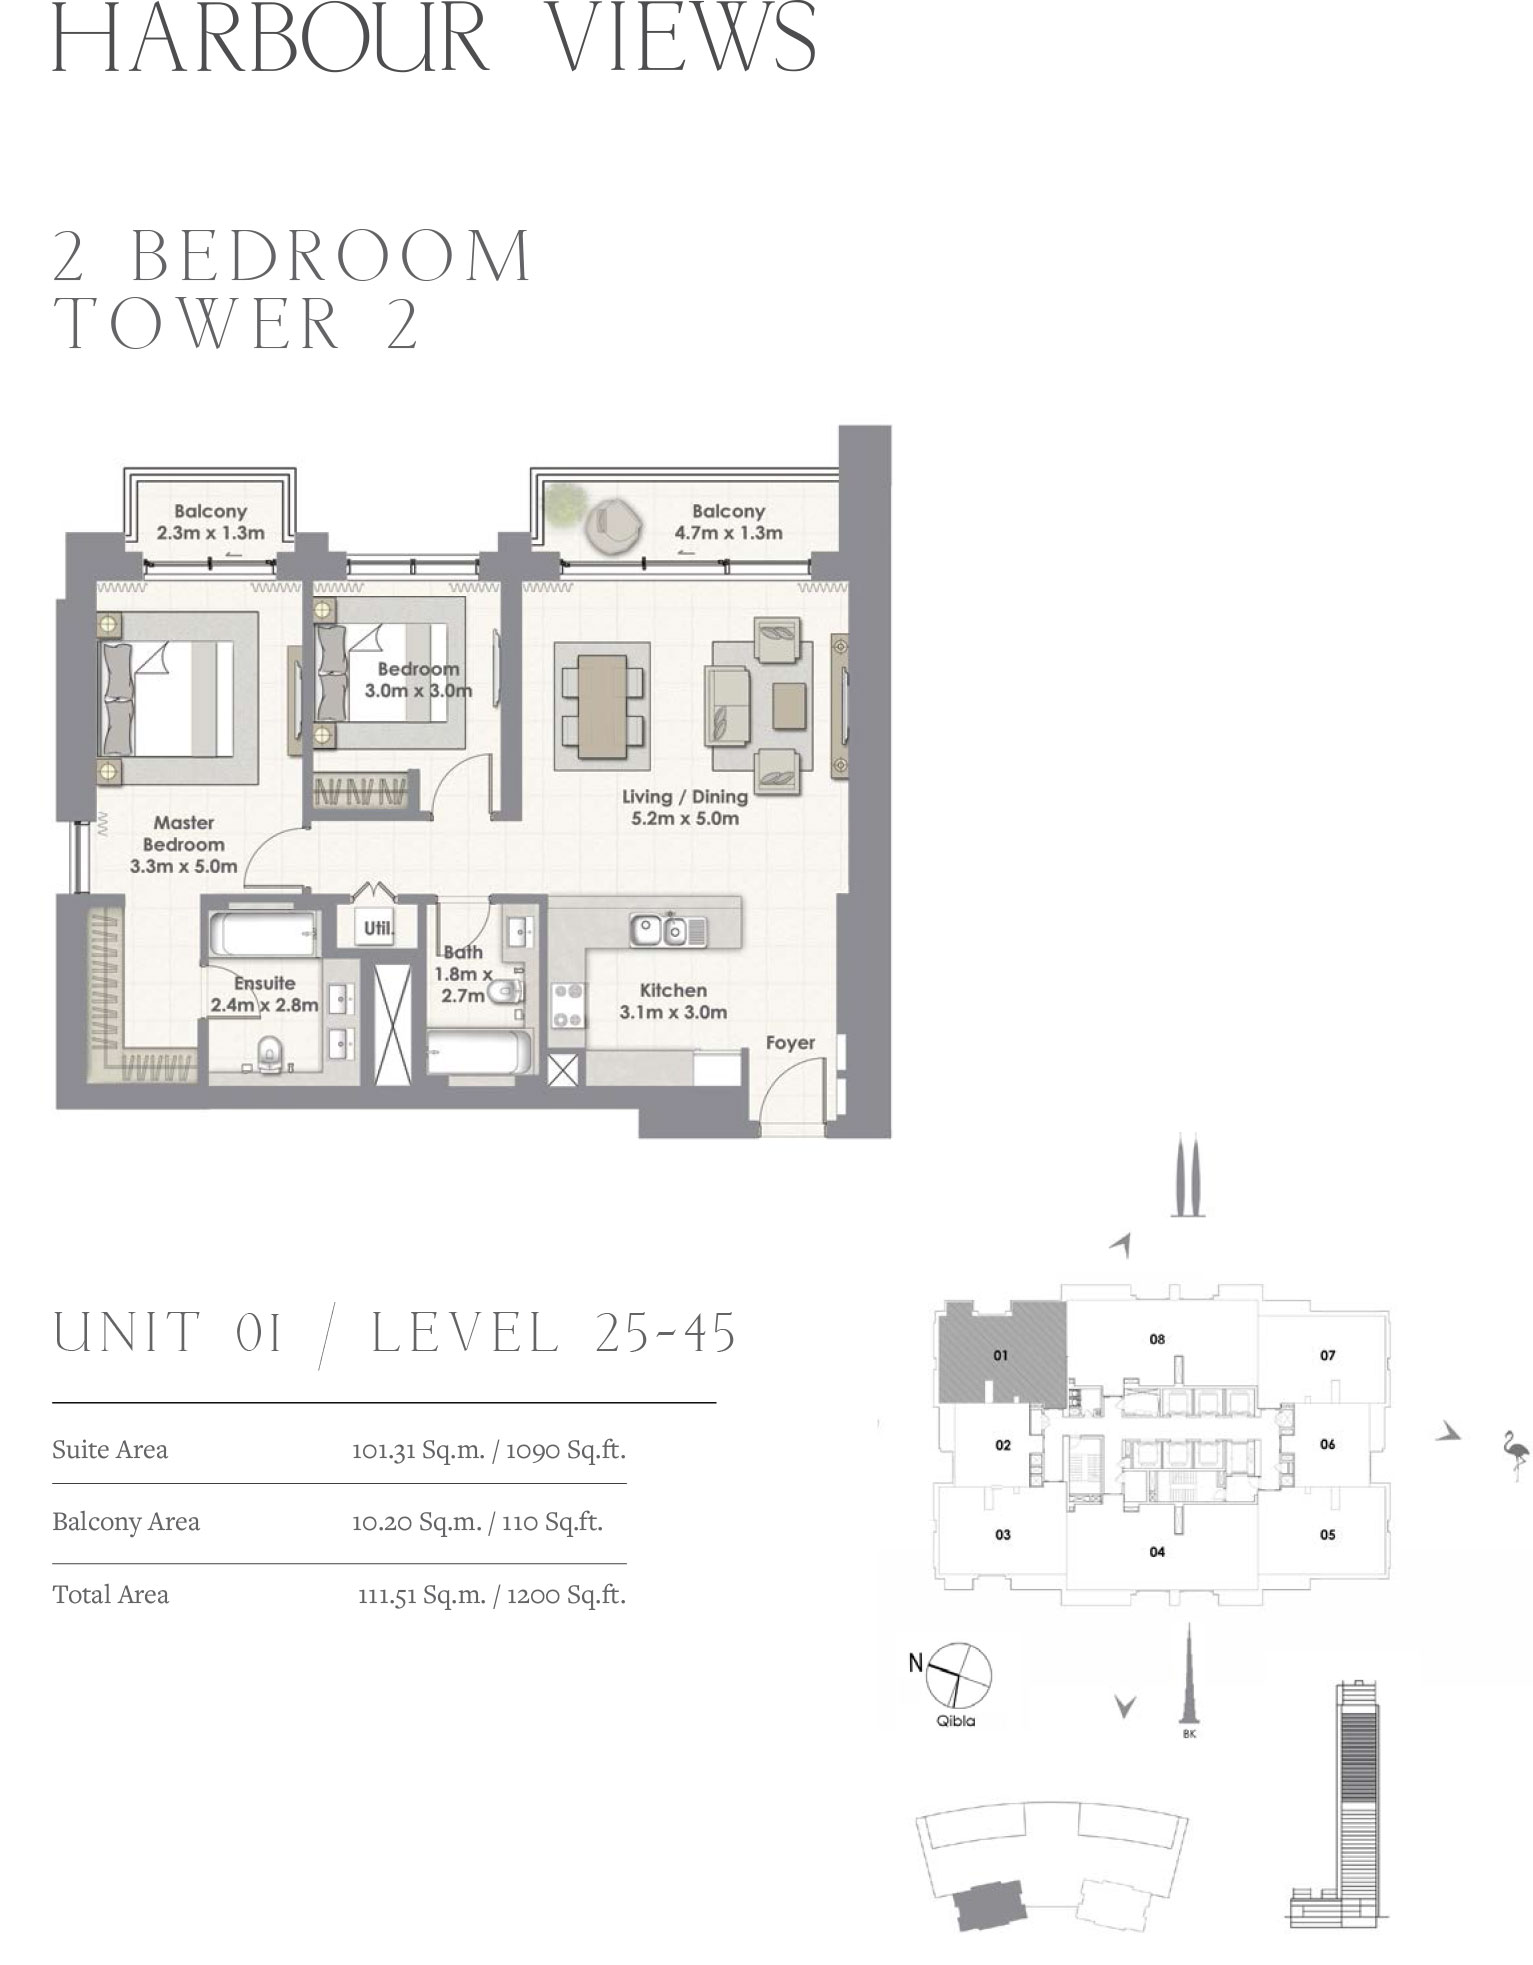 2 Bedroom Tower 2, Unit 01/Level 25-45